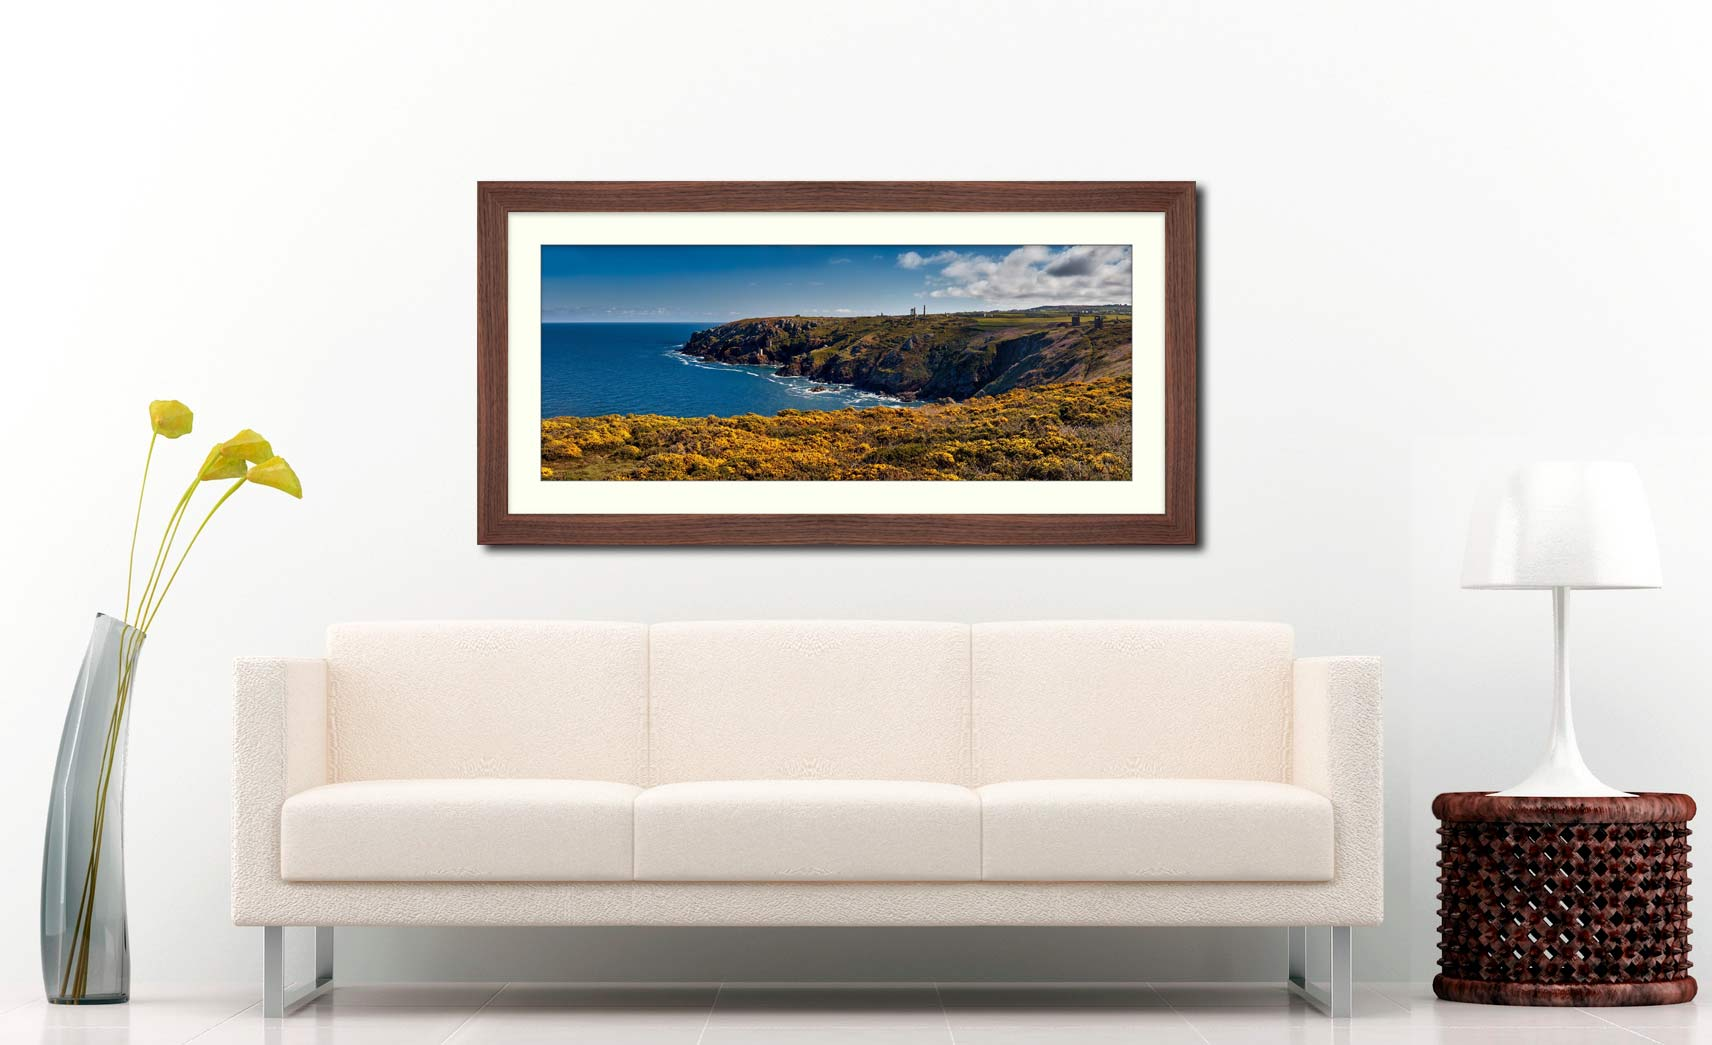 Botallack Mines Yellow Gorse - Framed Print with Mount on Wall